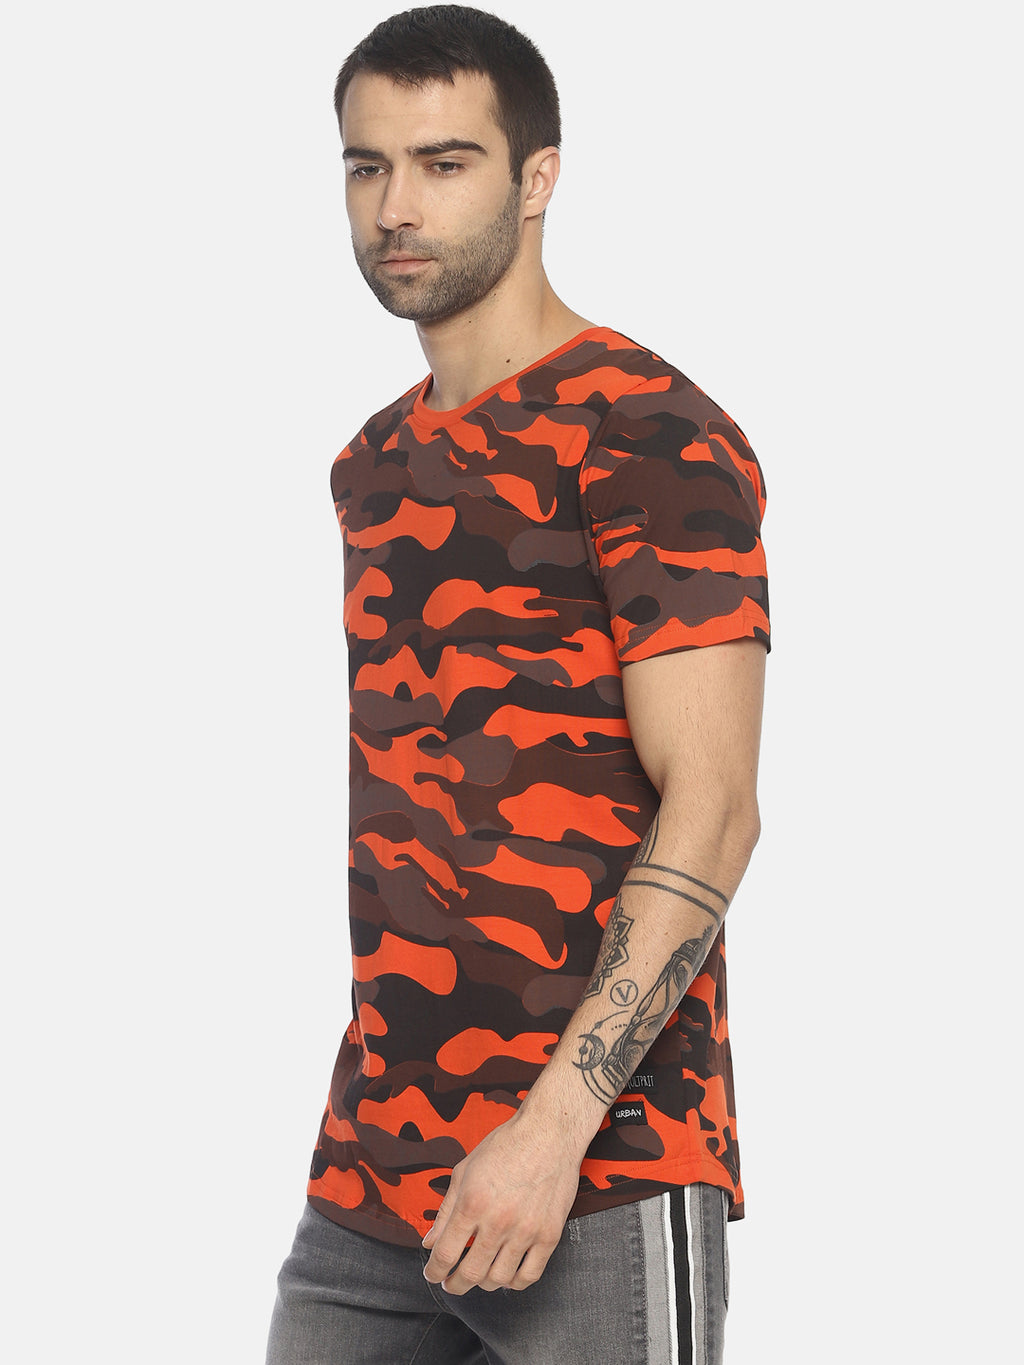 Round Neck Casual T- Shirt With Camouflage Print